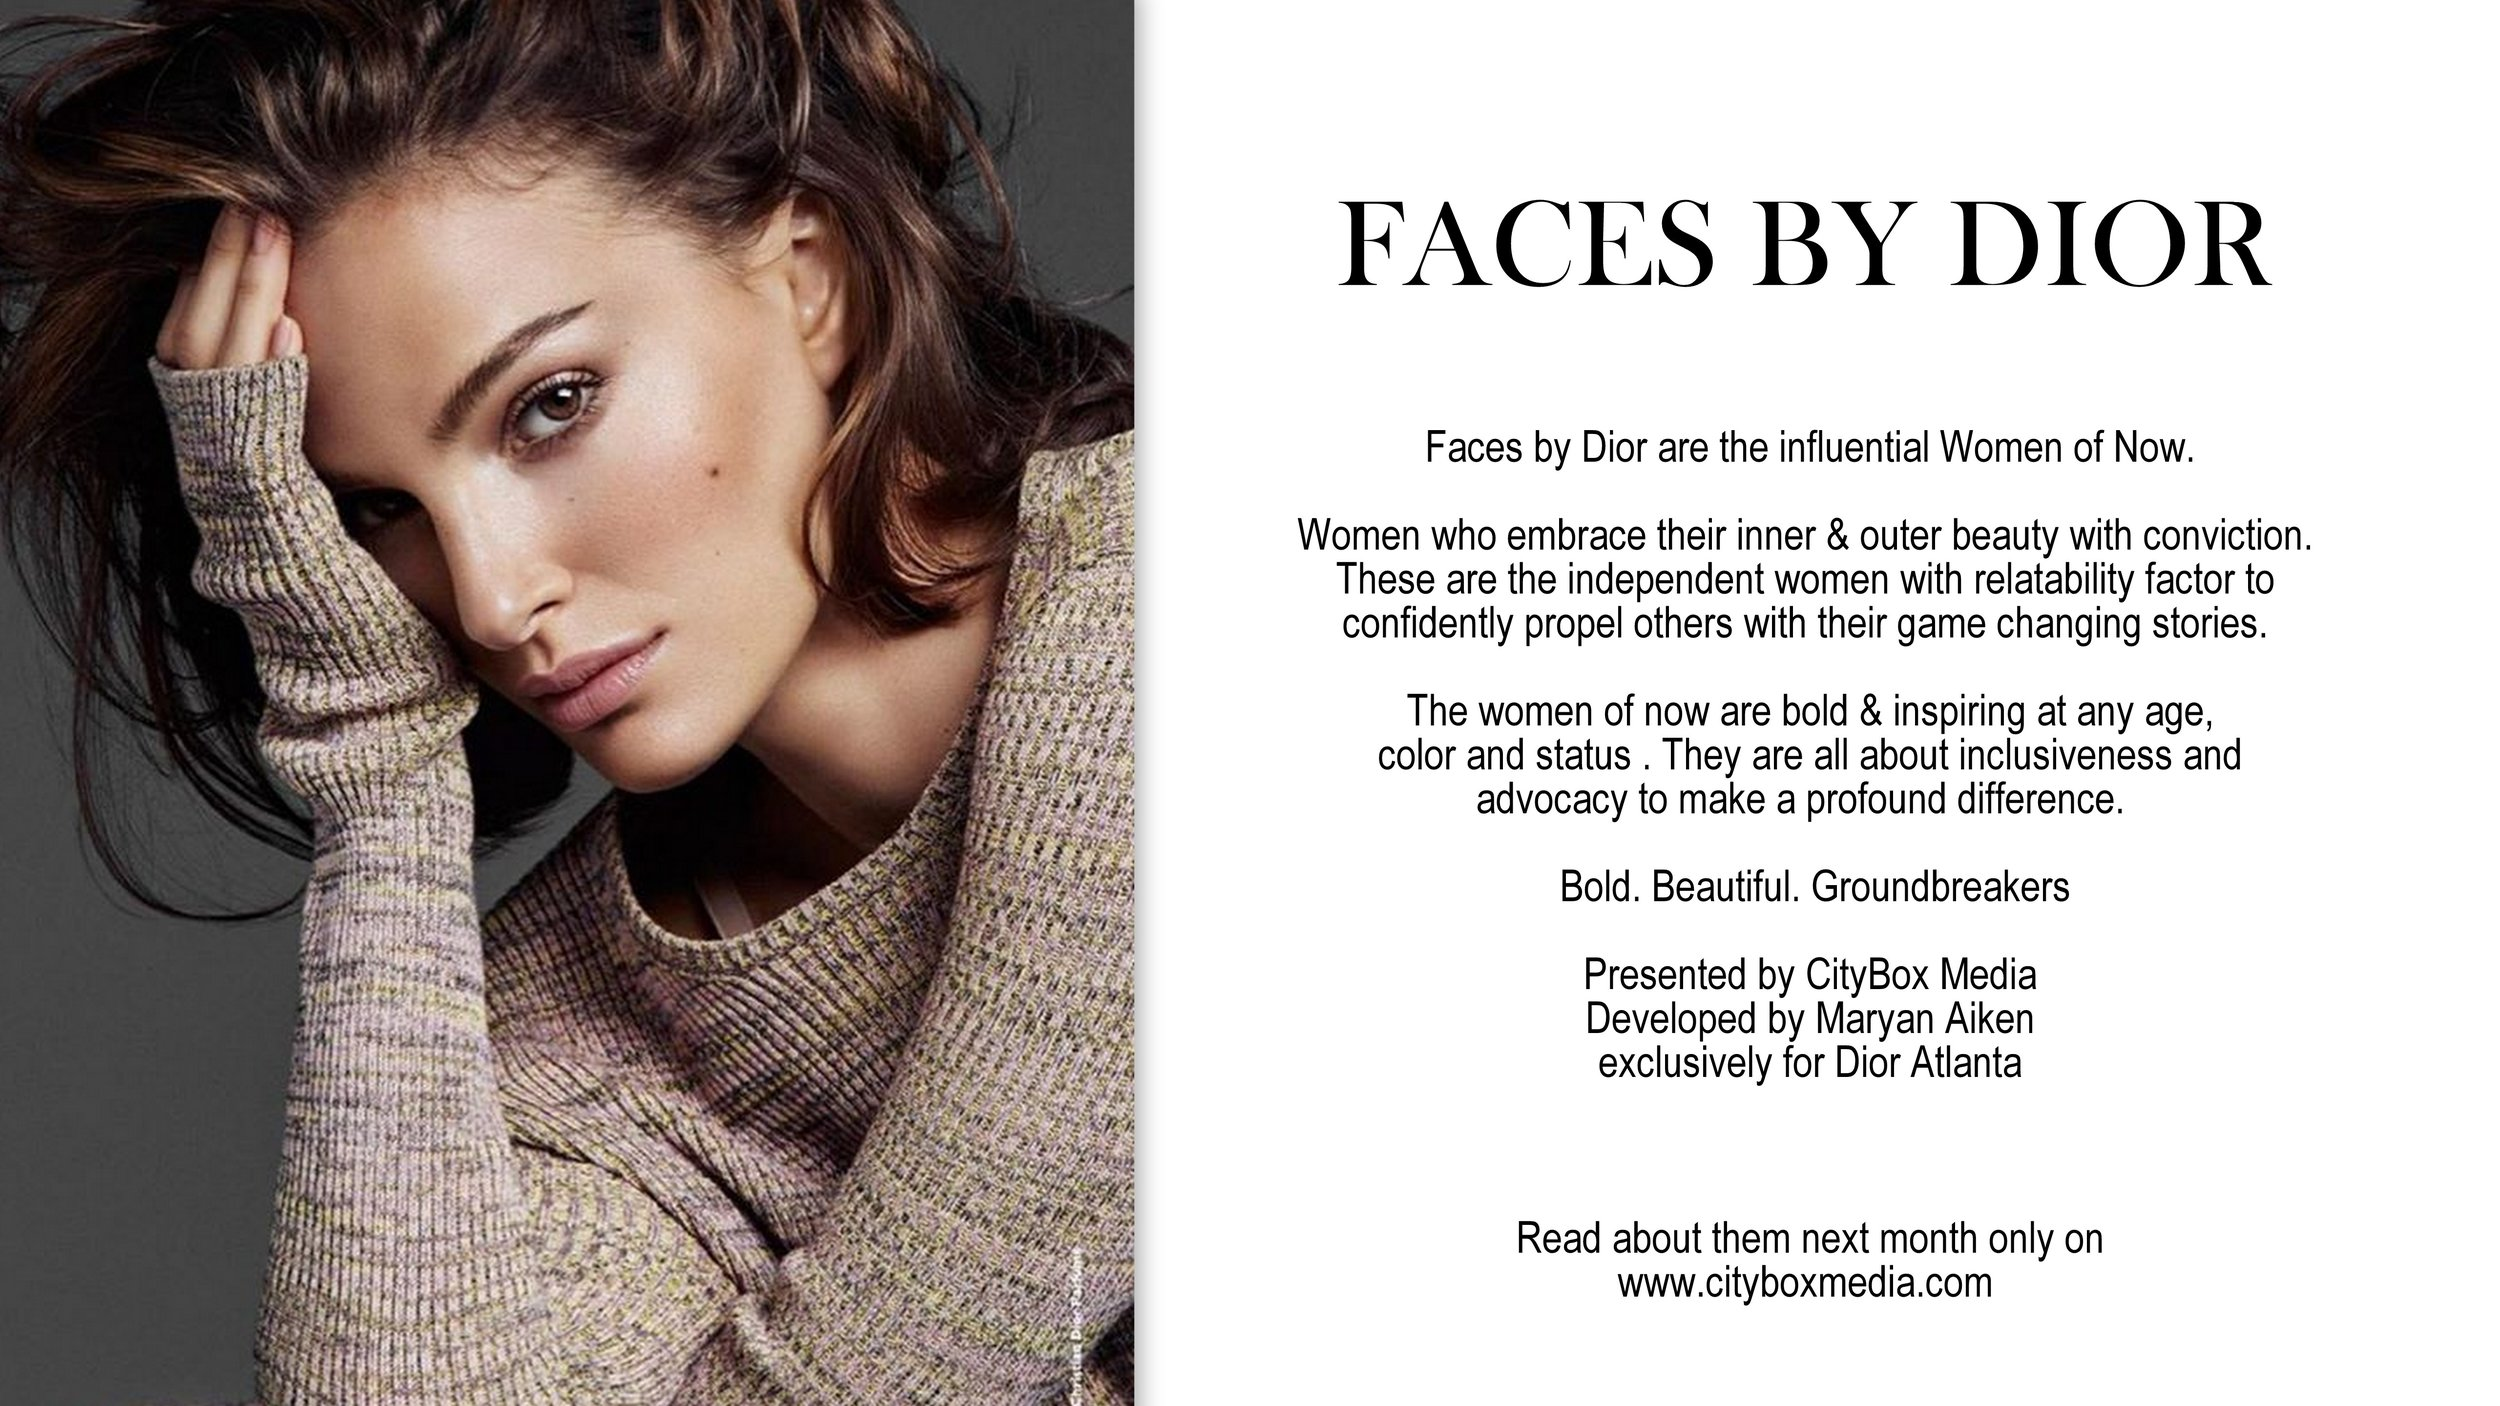 Faces by Dior 2019.jpg